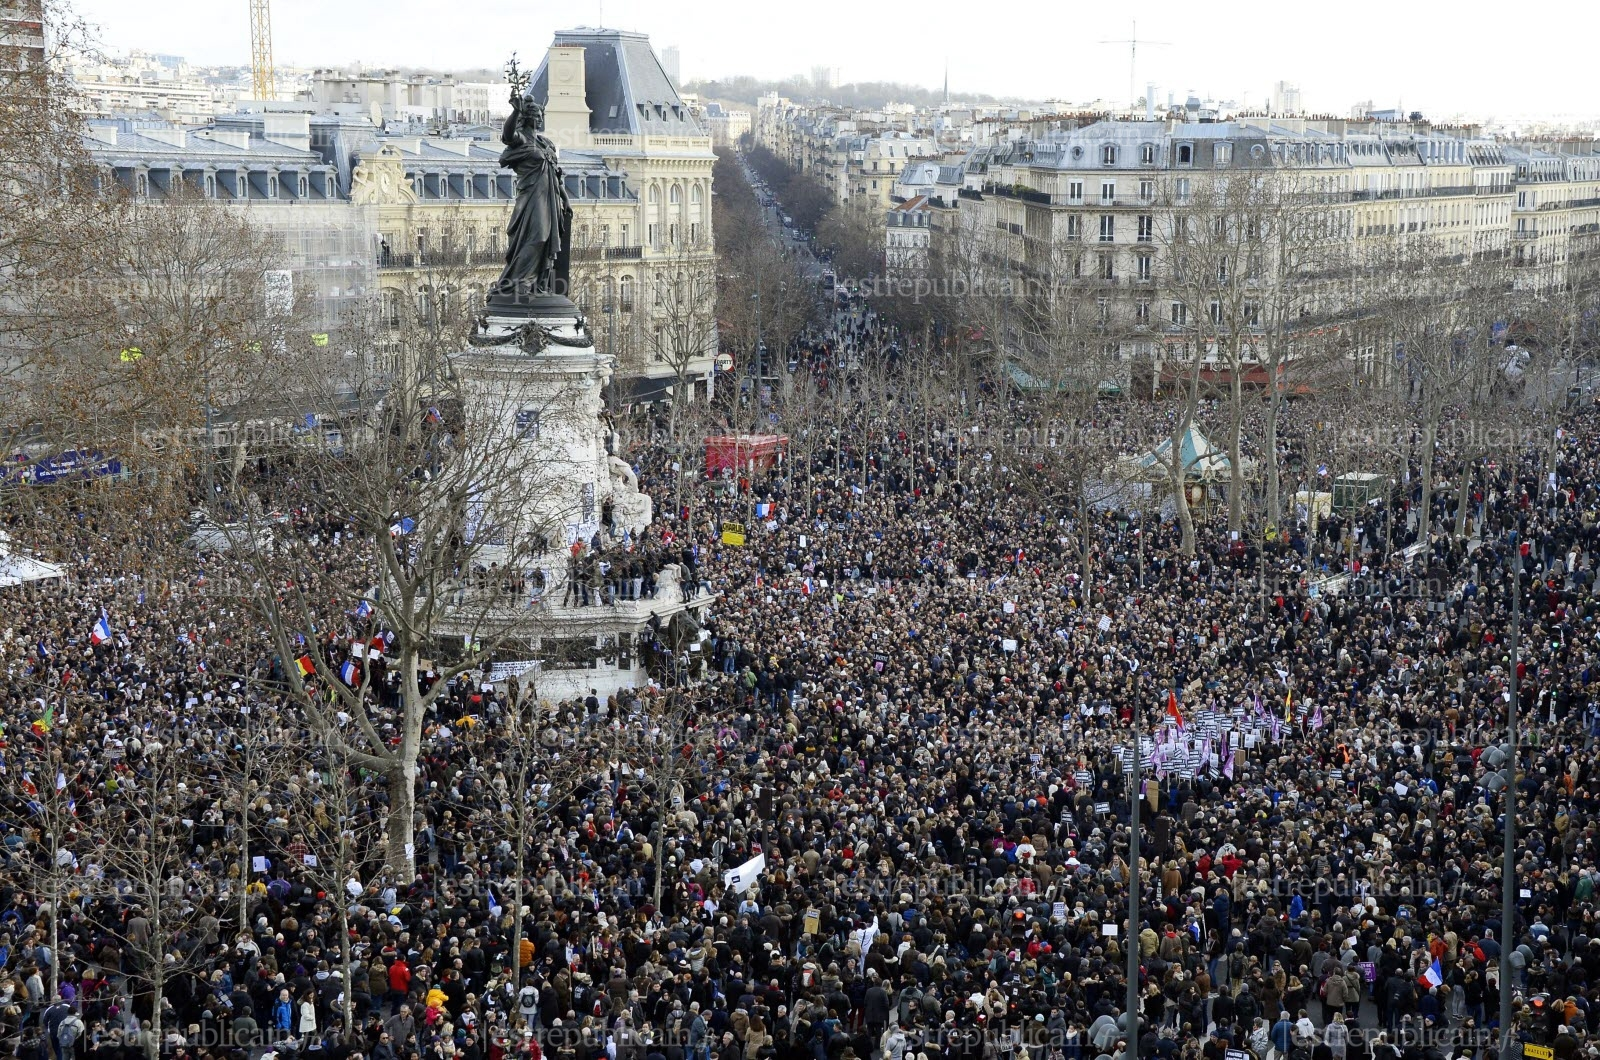 la-place-de-la-republique-point-de-depart-de-la-marche-republicaine-a-paris-photo-afp-bertrand-guay